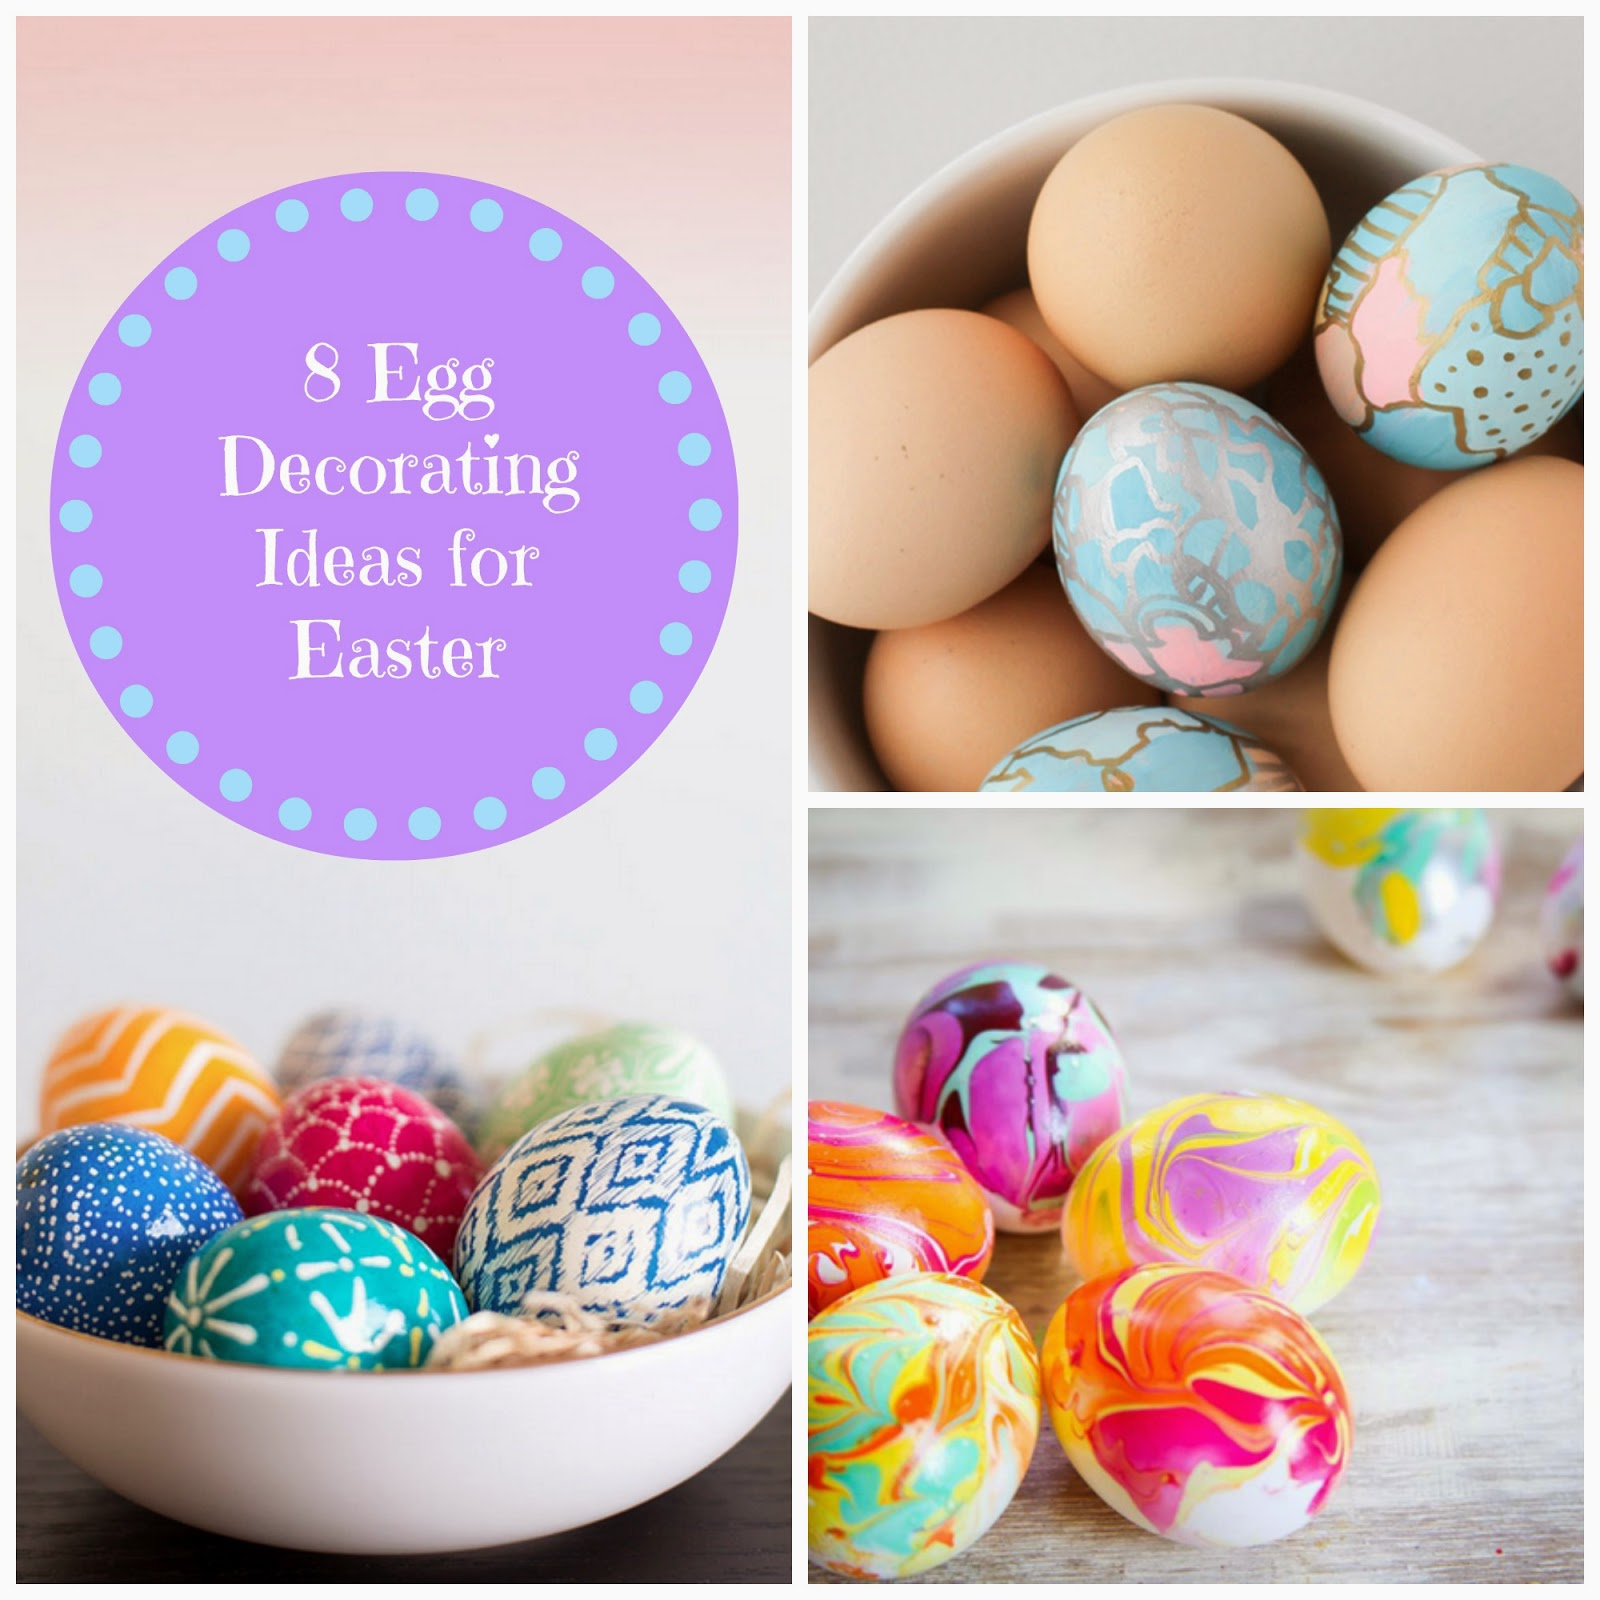 Pretty Whimsical 8 Egg Decorating Ideas For Easter